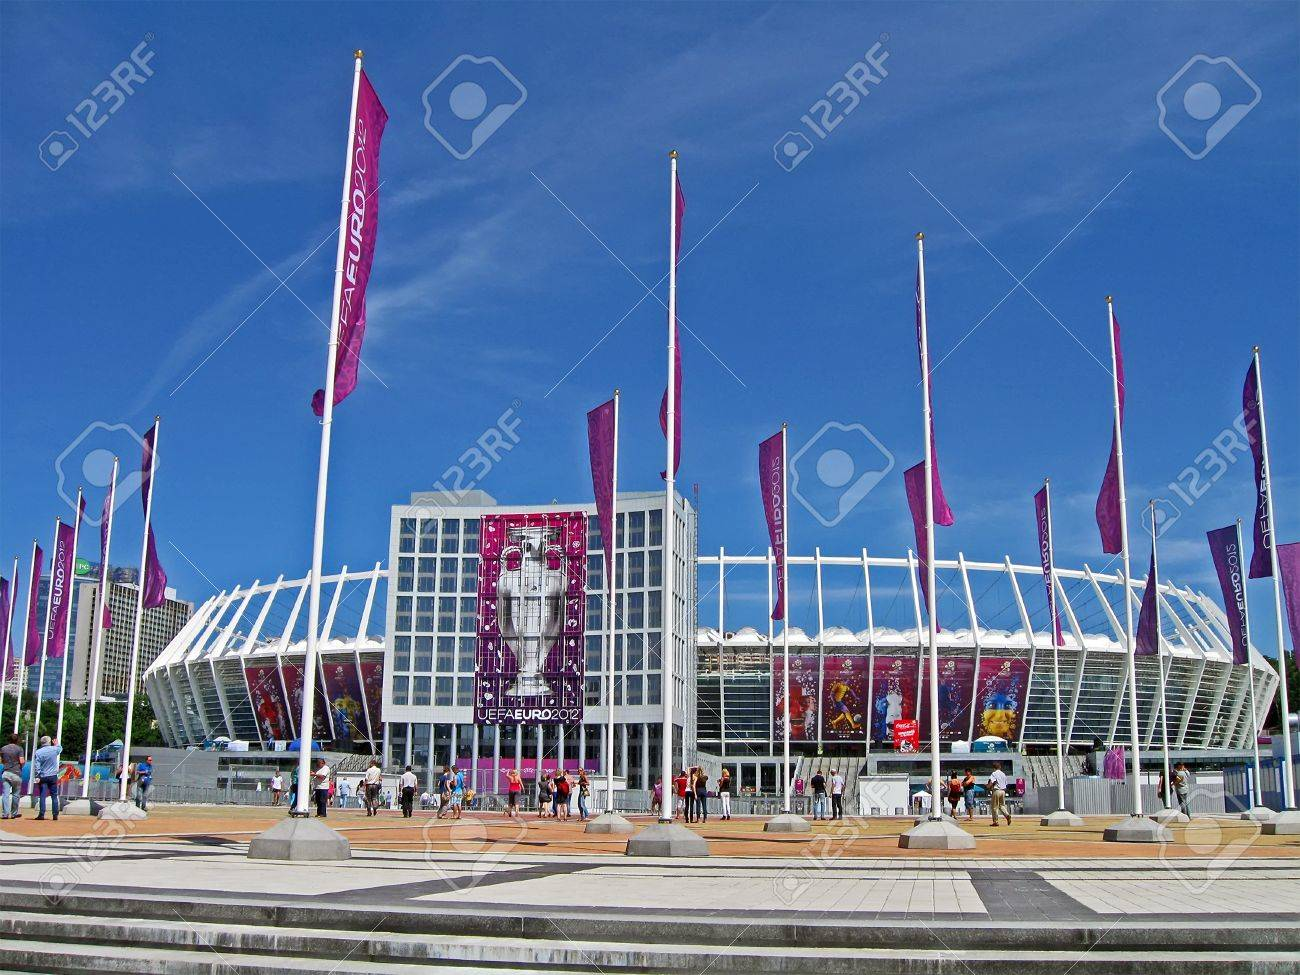 KIEV, UKRAINE - JUNE 11: Renewed Olympic Sport Stadium before match Ukraine-Sweden on June 11, 2012 in Kiev, UKRAINE. National Sport complex Olimpiysky selected as stadium for final EURO 2012 football championship in Ukraine.  Stock Photo - 14140982